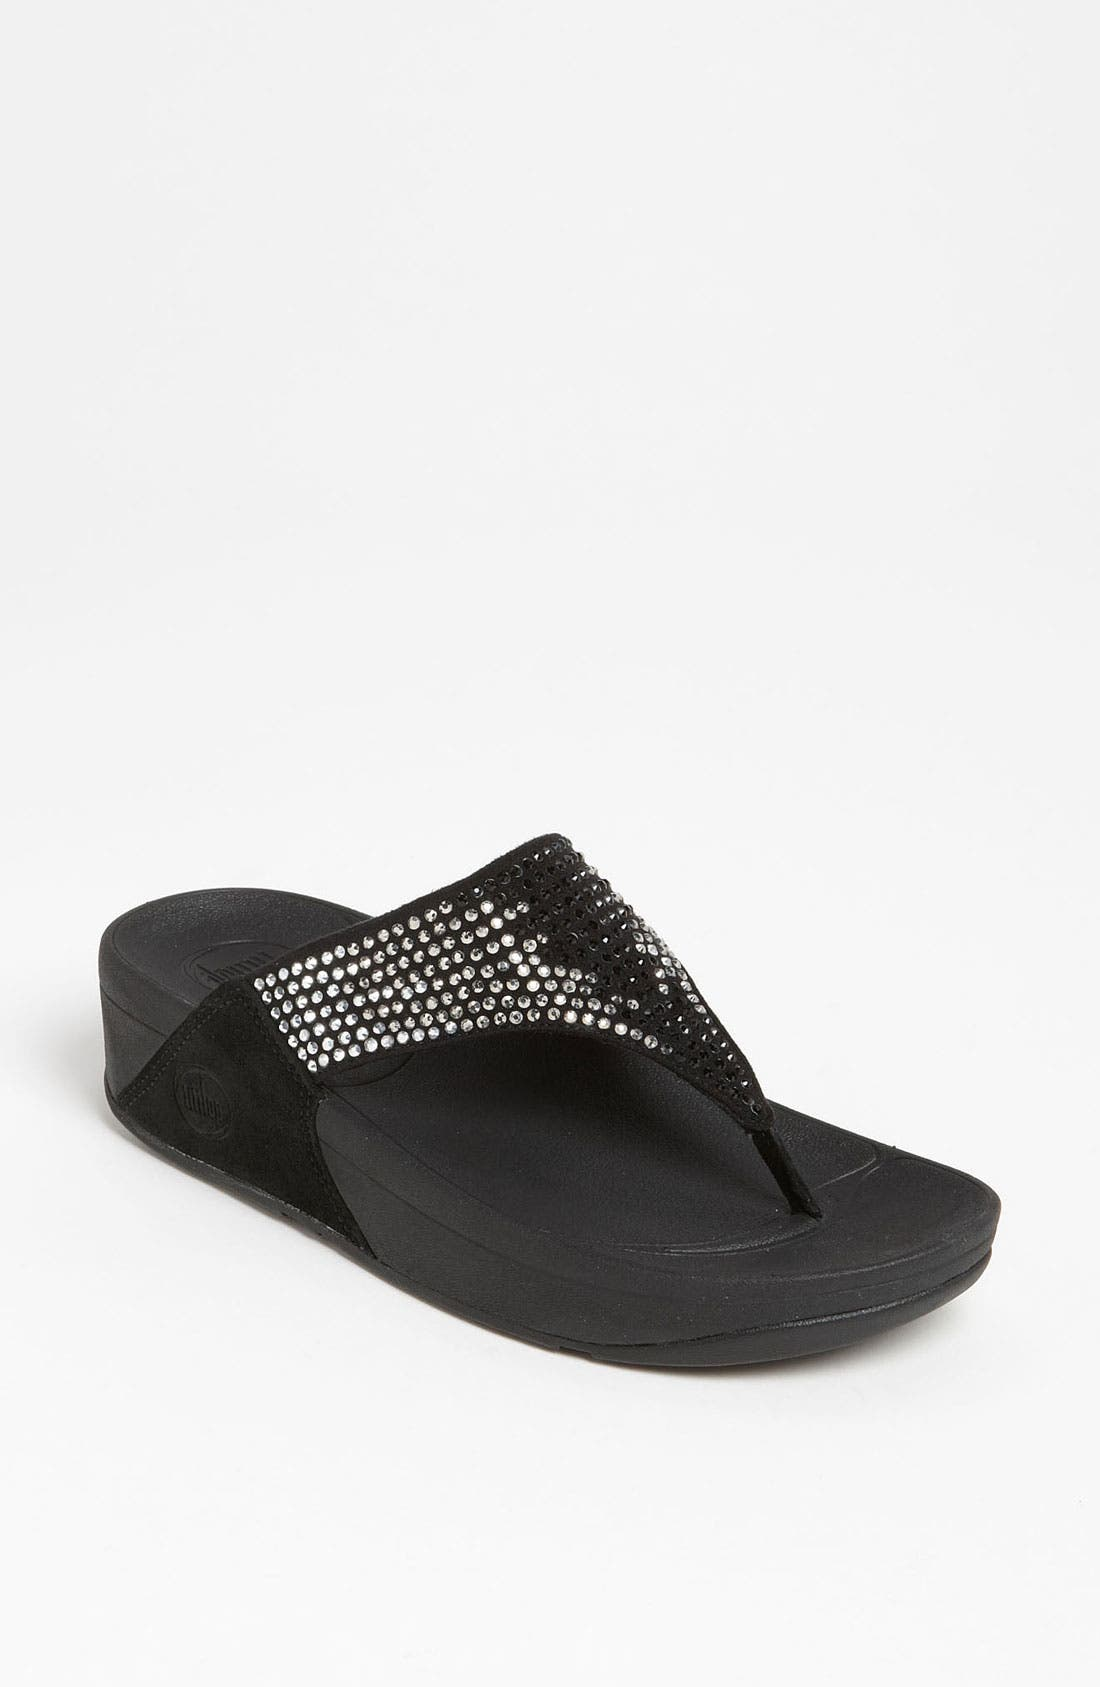 Main Image - FitFlop 'Flare' Sandal